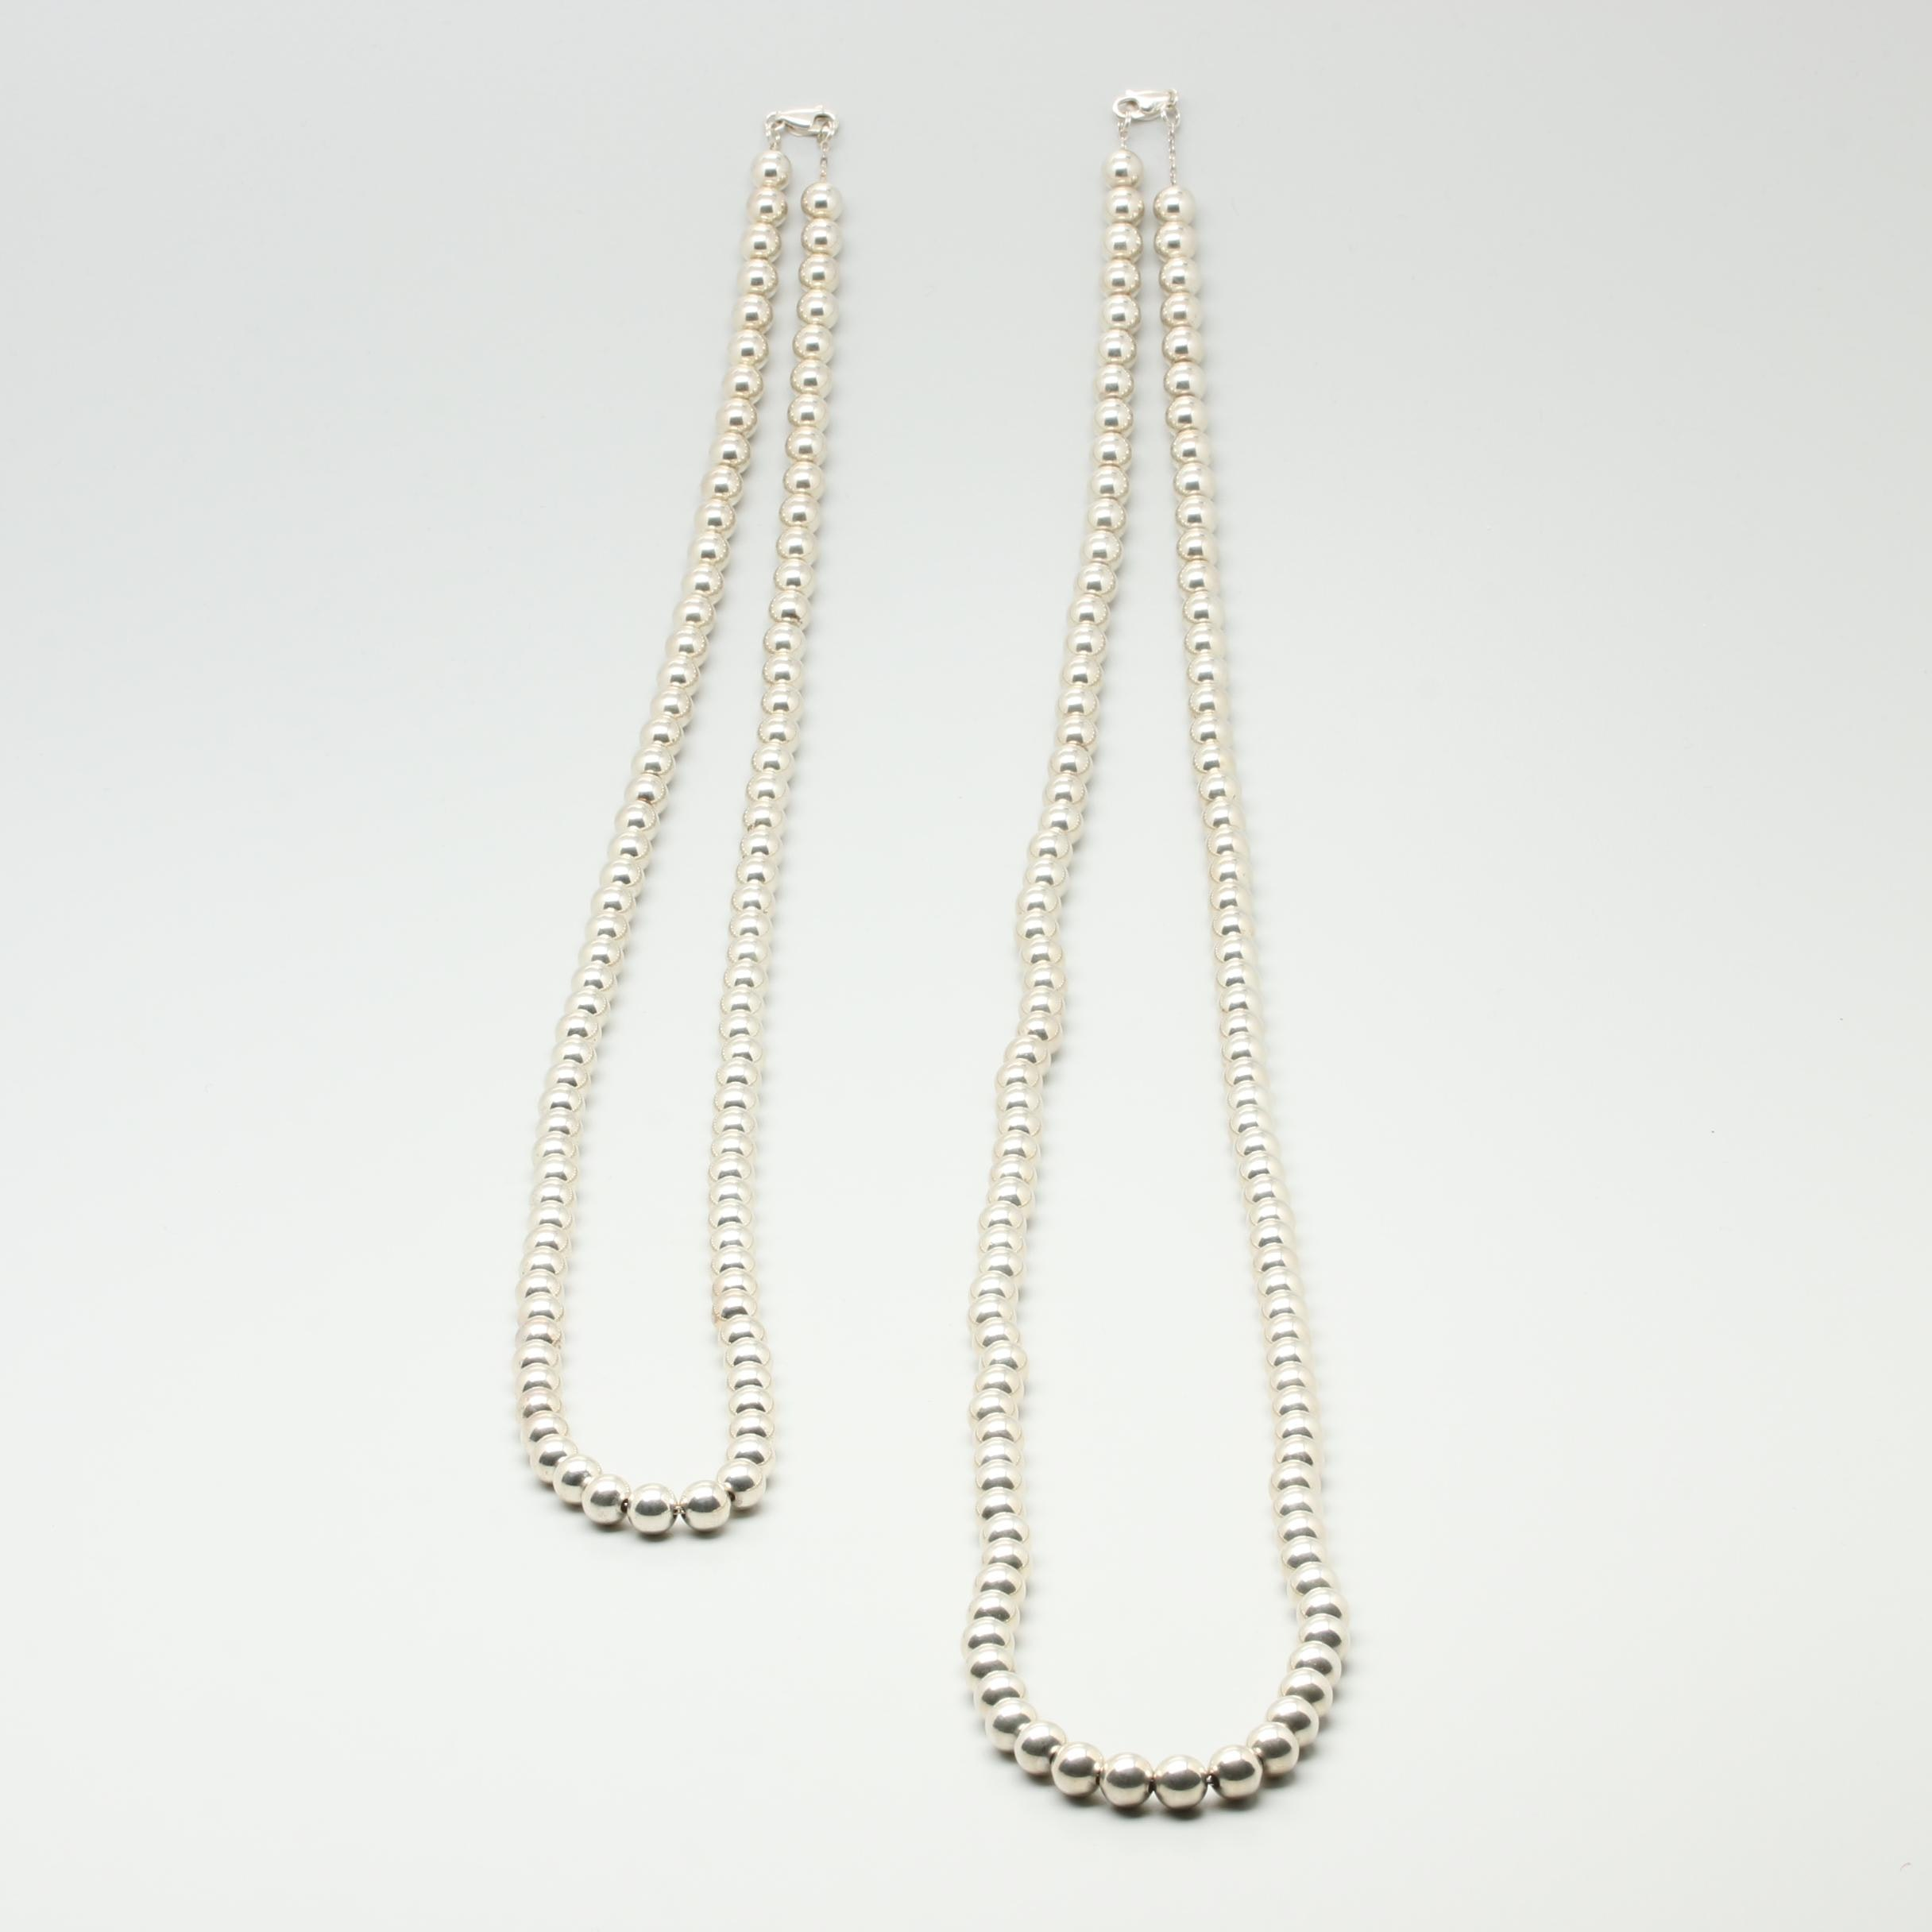 Sterling Silver Beaded Necklace Selection